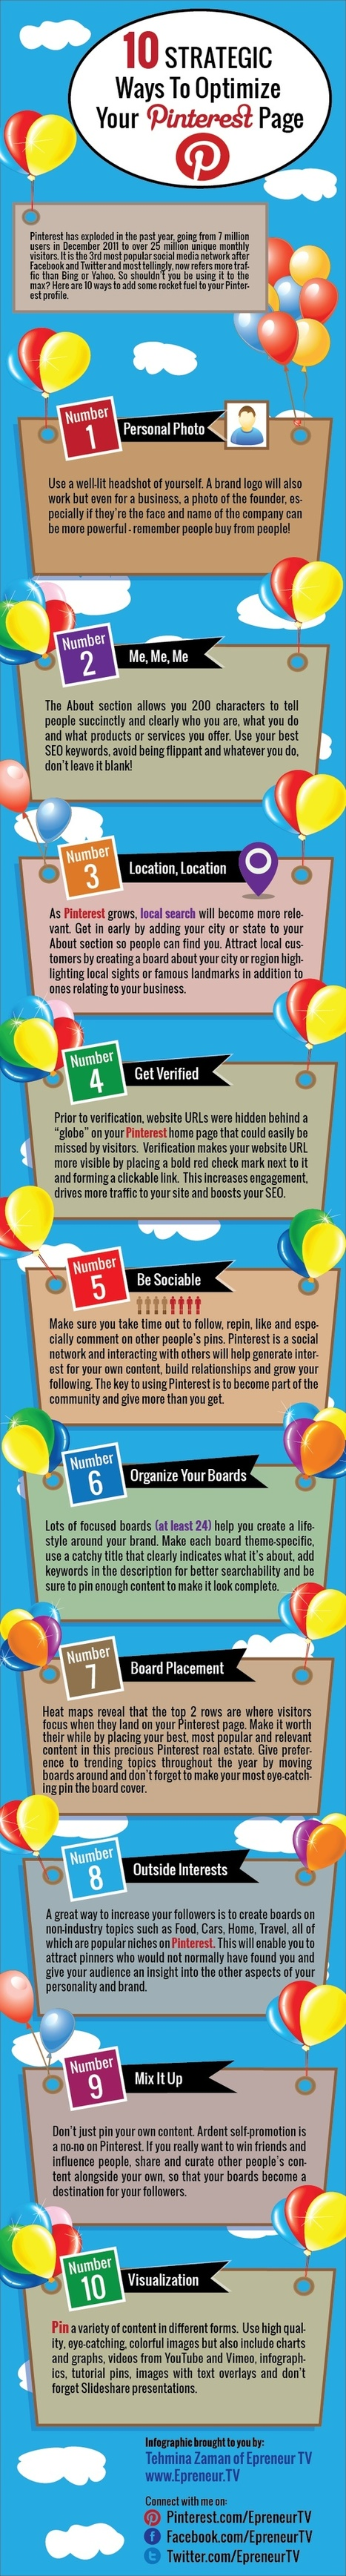 10 Strategic Ways To Optimize Your Pinterest Page   All about Web   Scoop.it